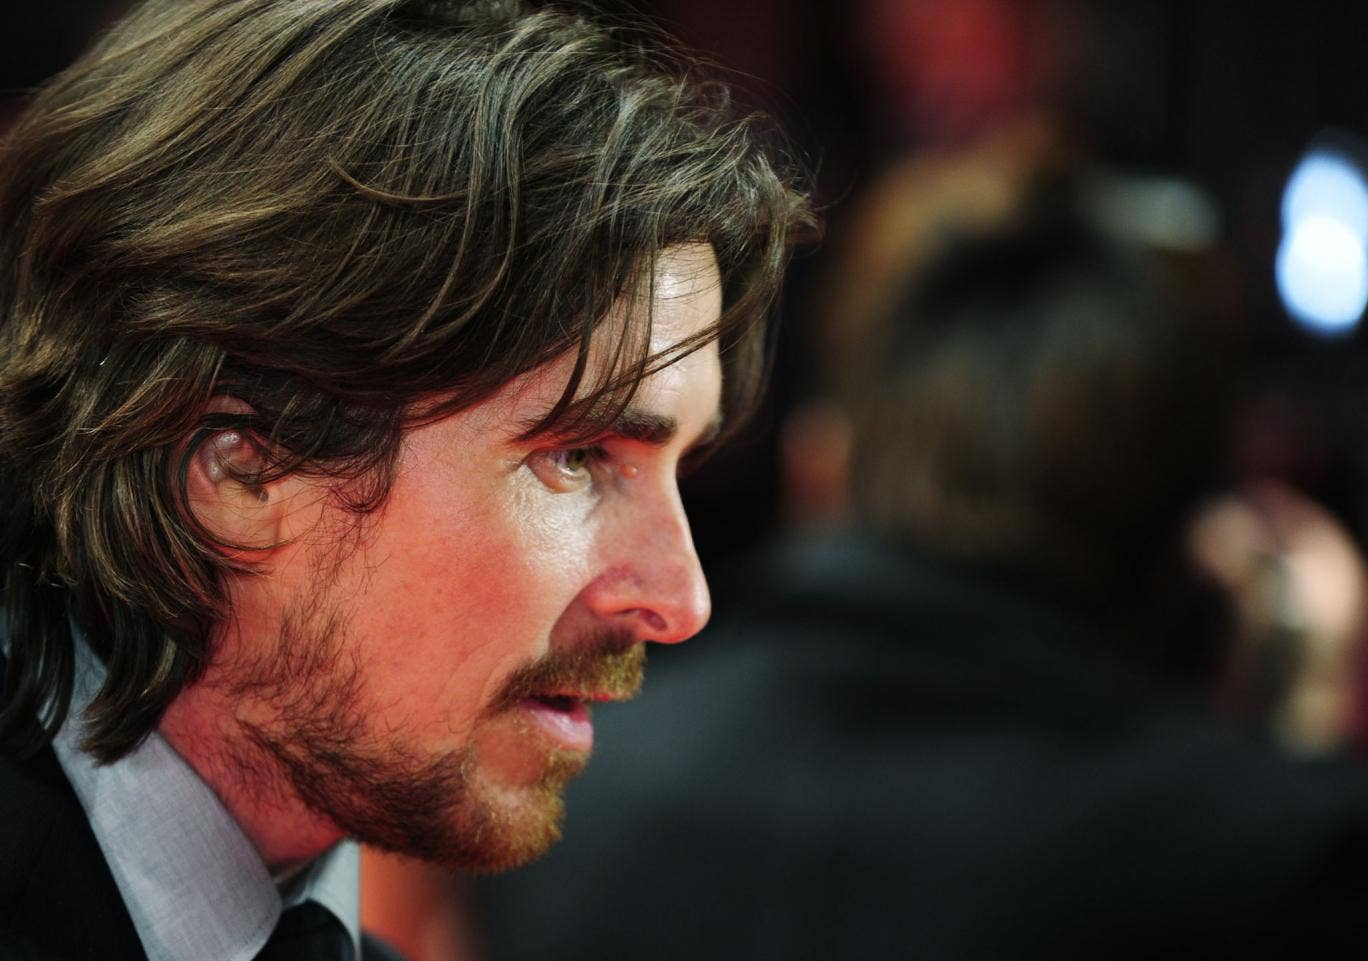 Christian Bale thinks he will be cut from Terrence Malick's untitled new film after shooting for few days than planned